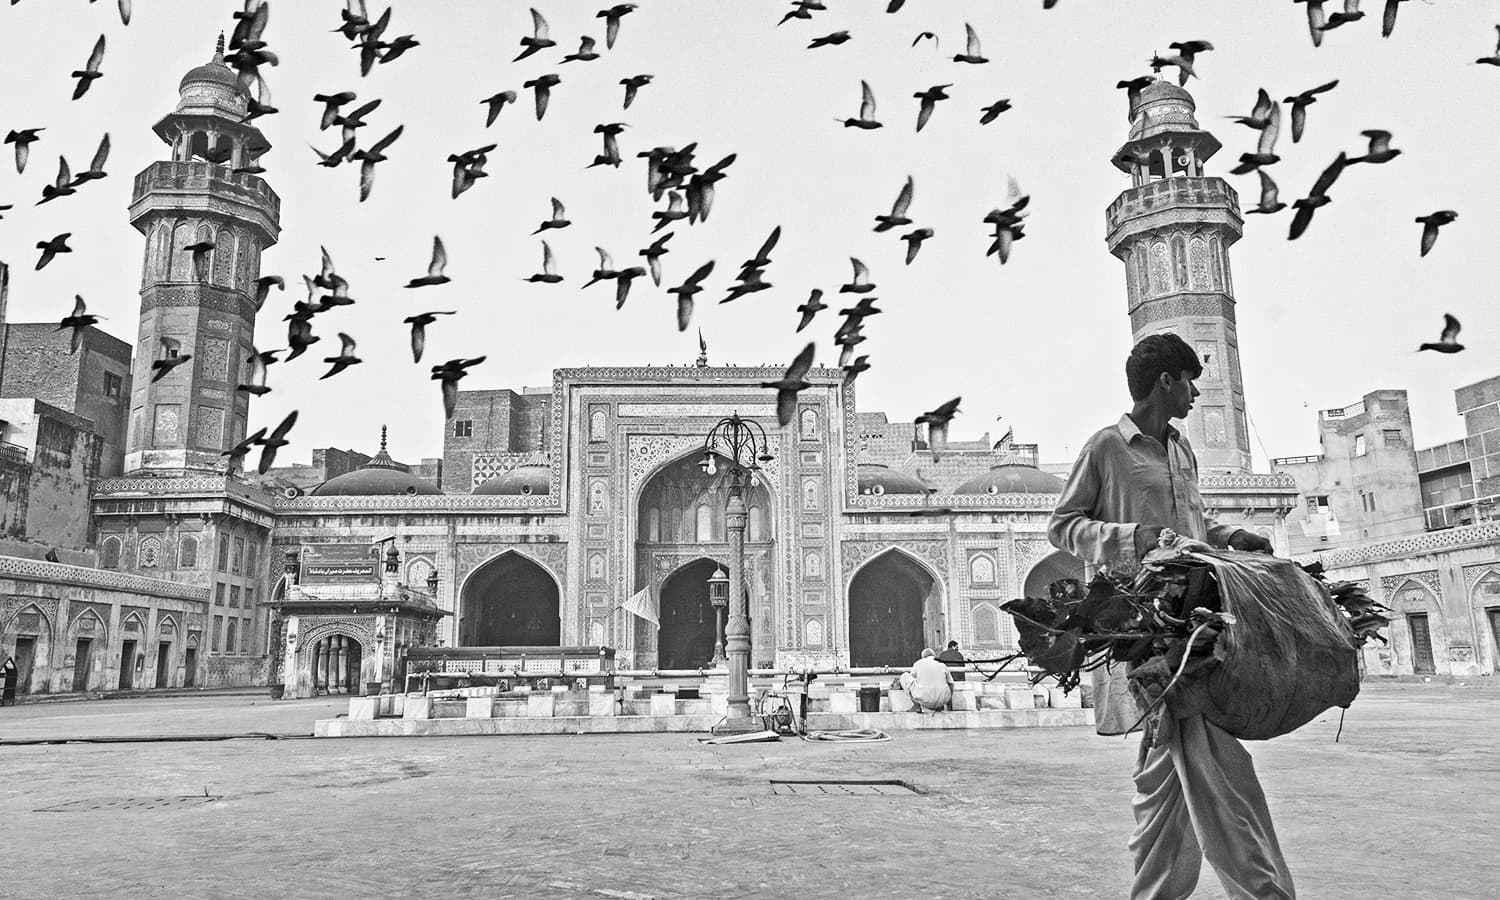 Masjid Wazir Khan: A mole on the cheek of Lahore. —Photo by Khalil Shah/The copyrights of the image are the sole property of the photographer and cannot be re-sold or transferred in any way.